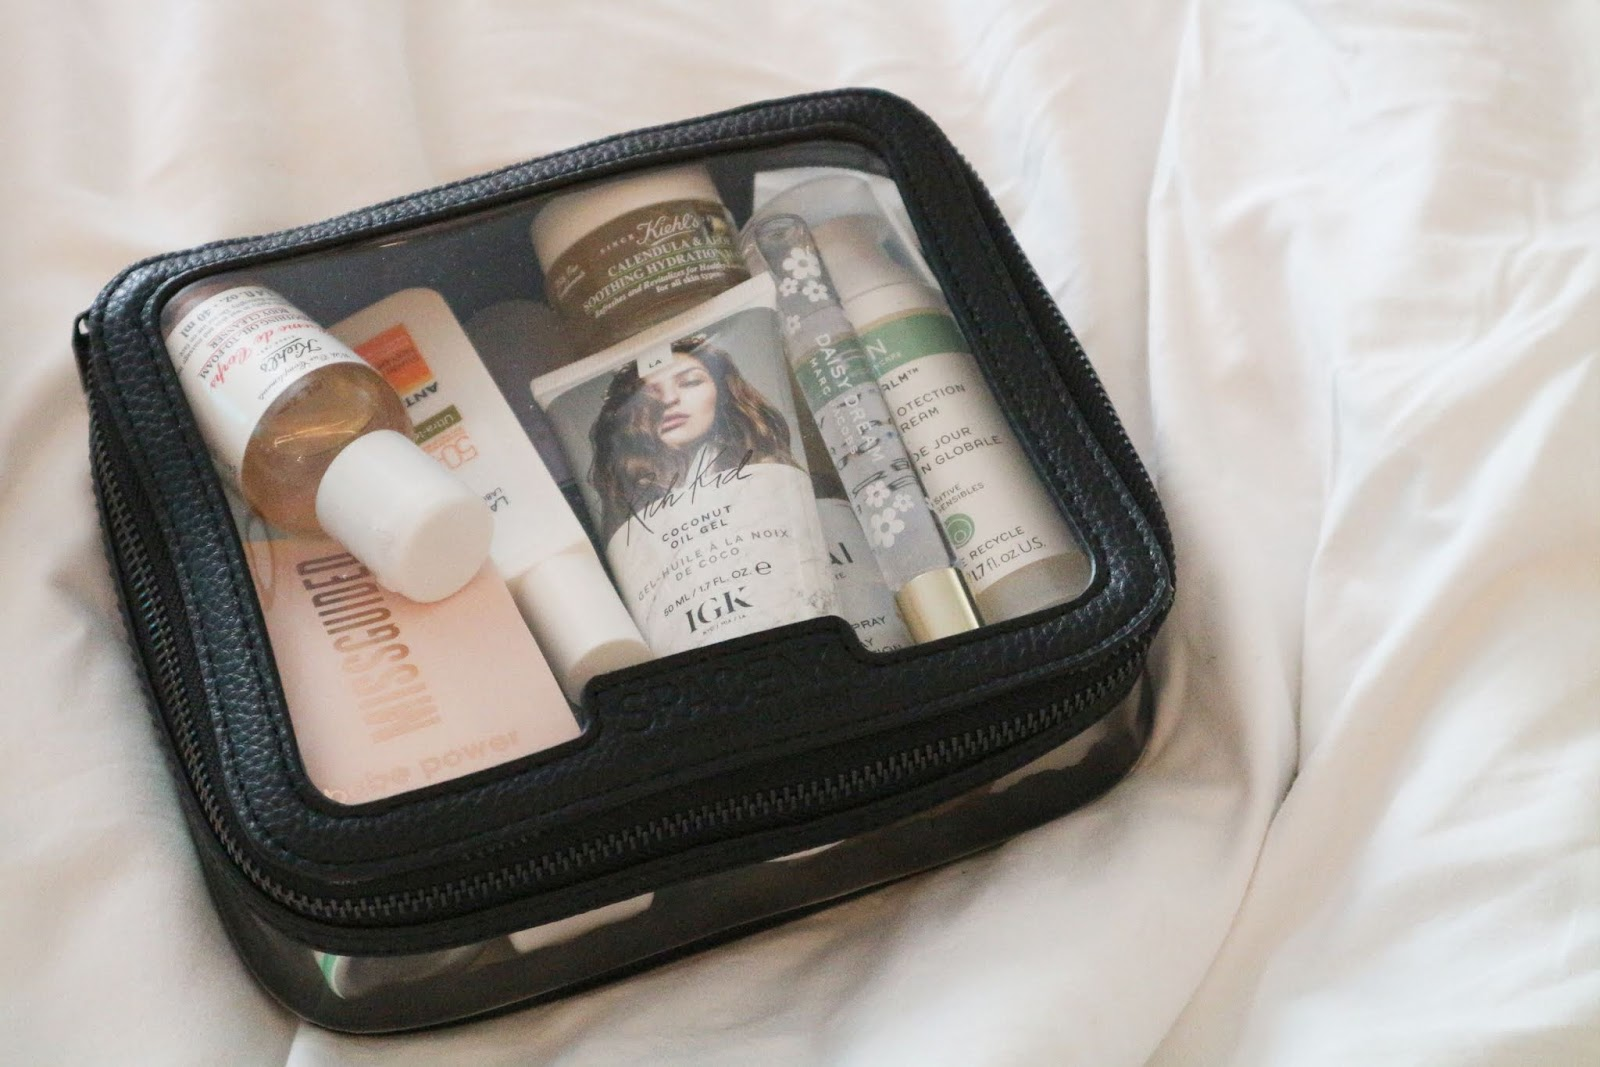 Space NK Travel Bag